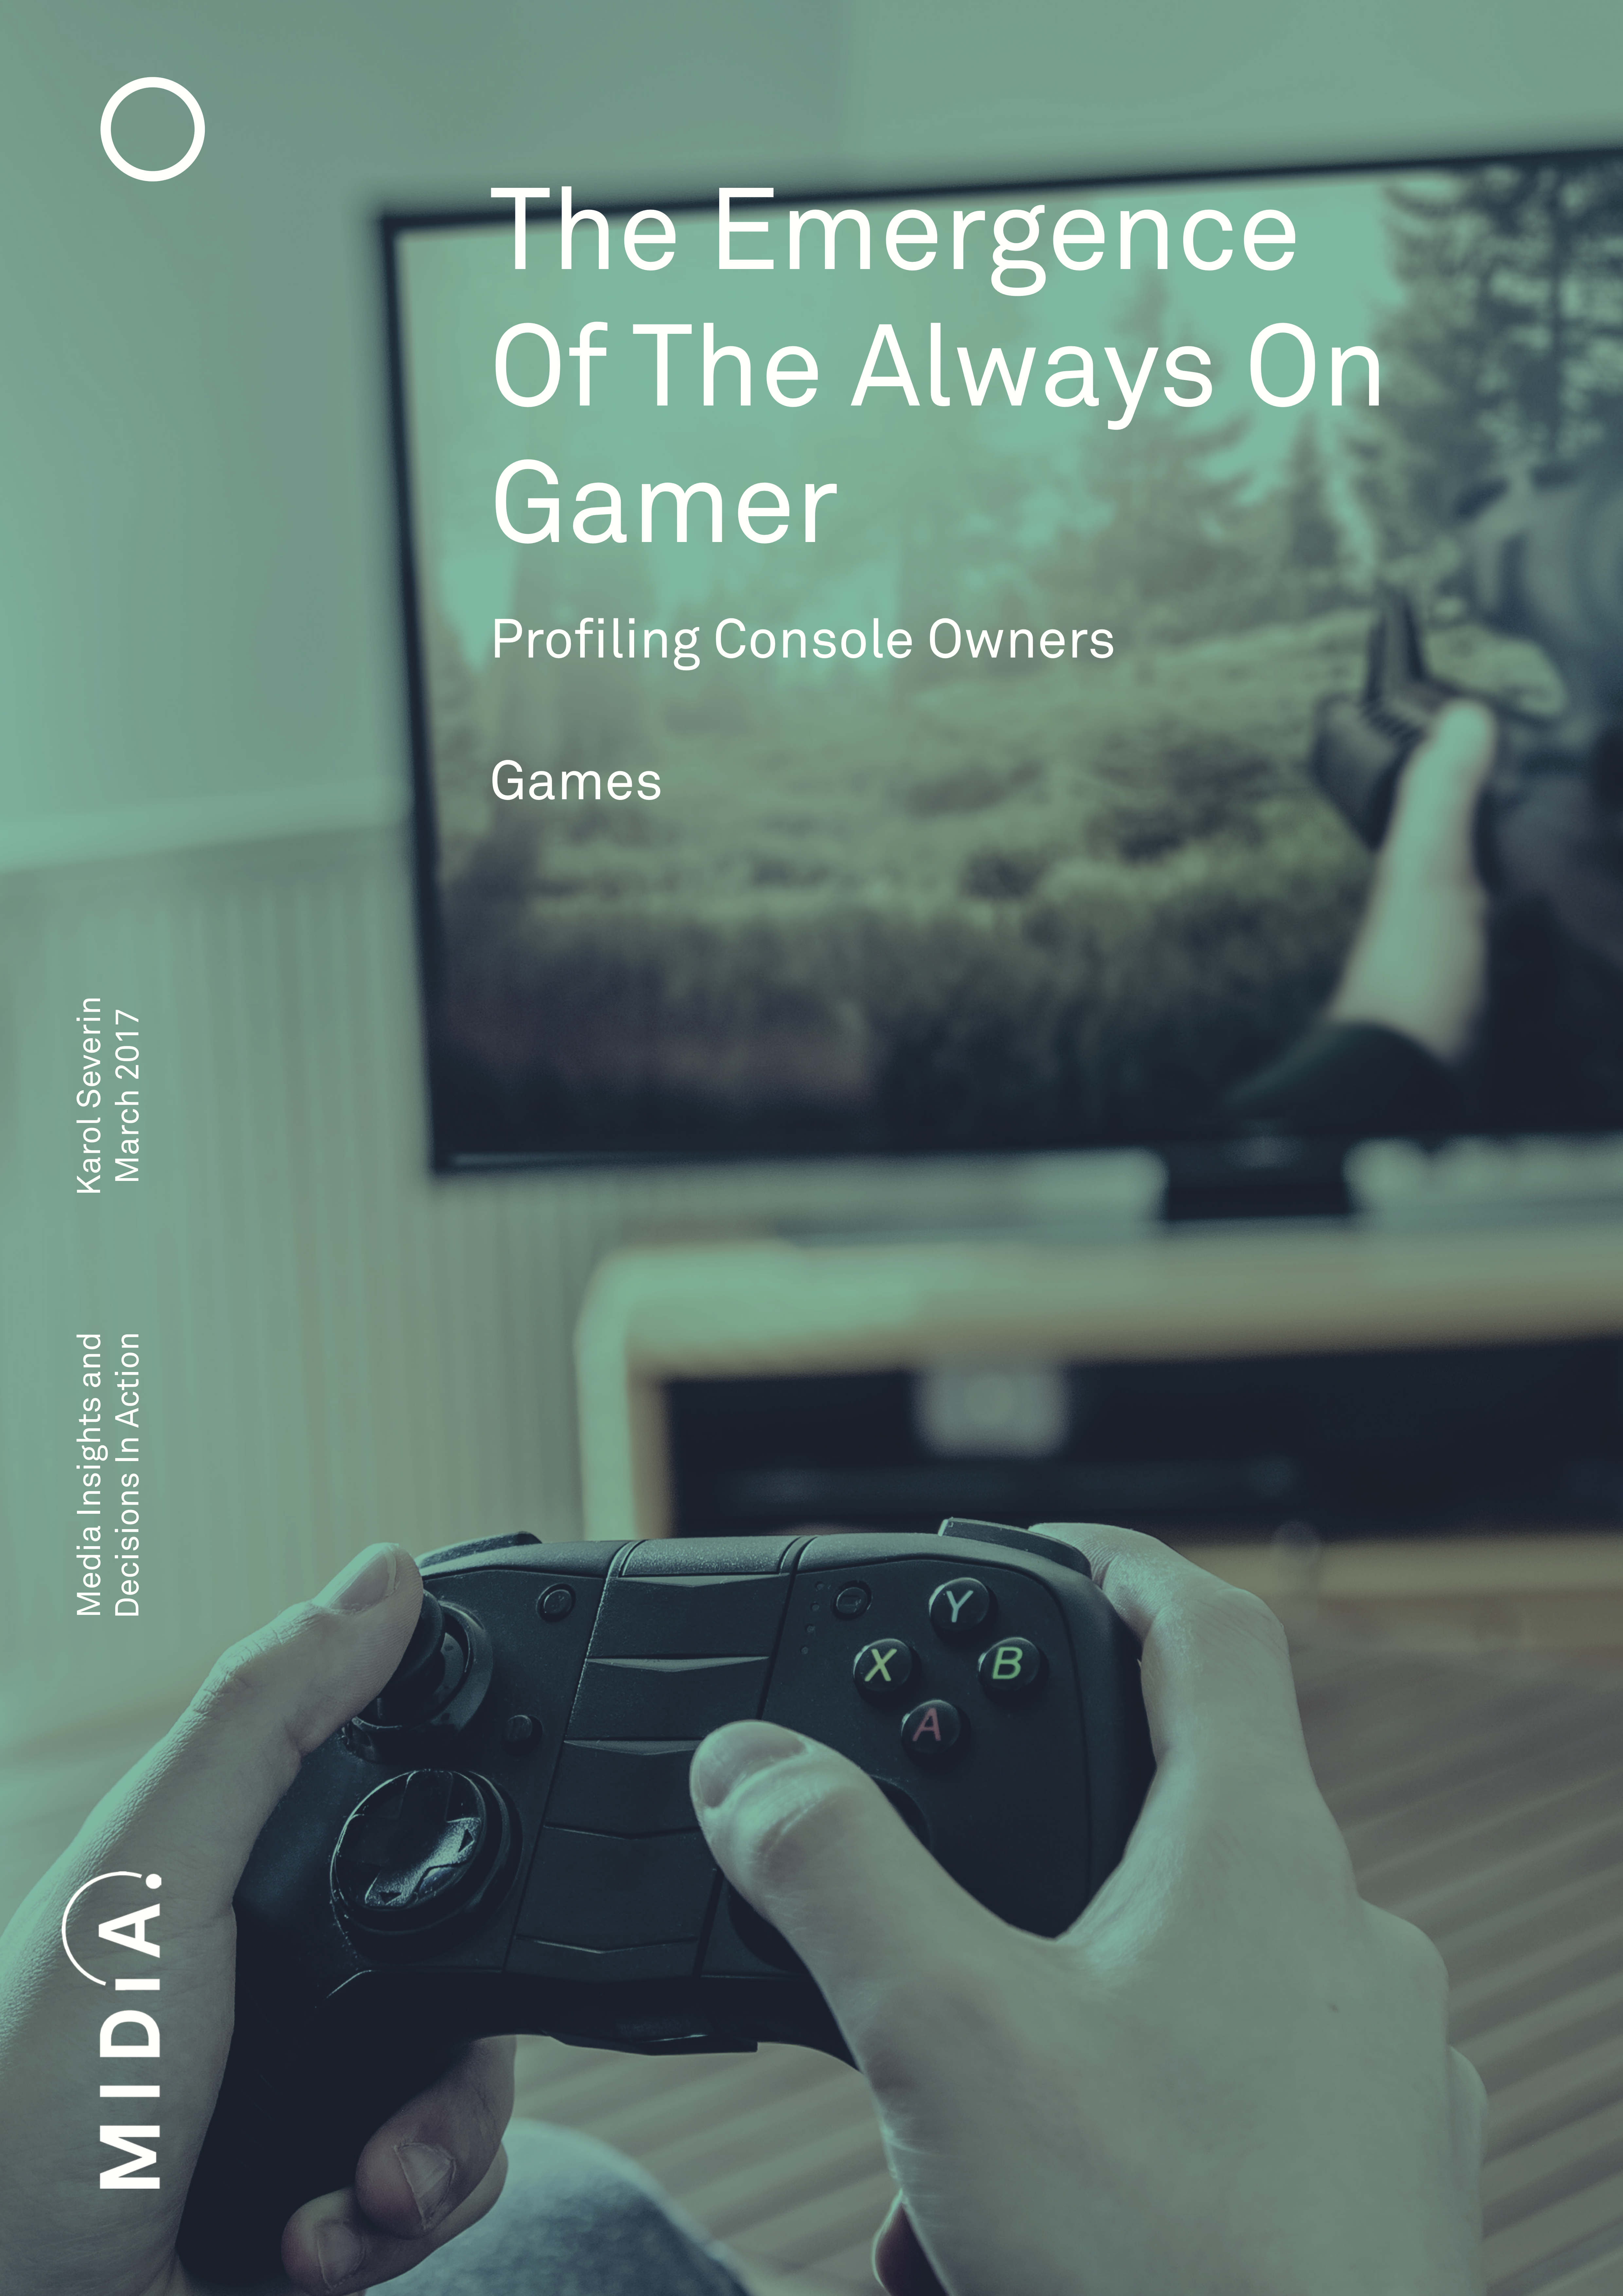 Cover image for The Emergence Of The Always On Gamer